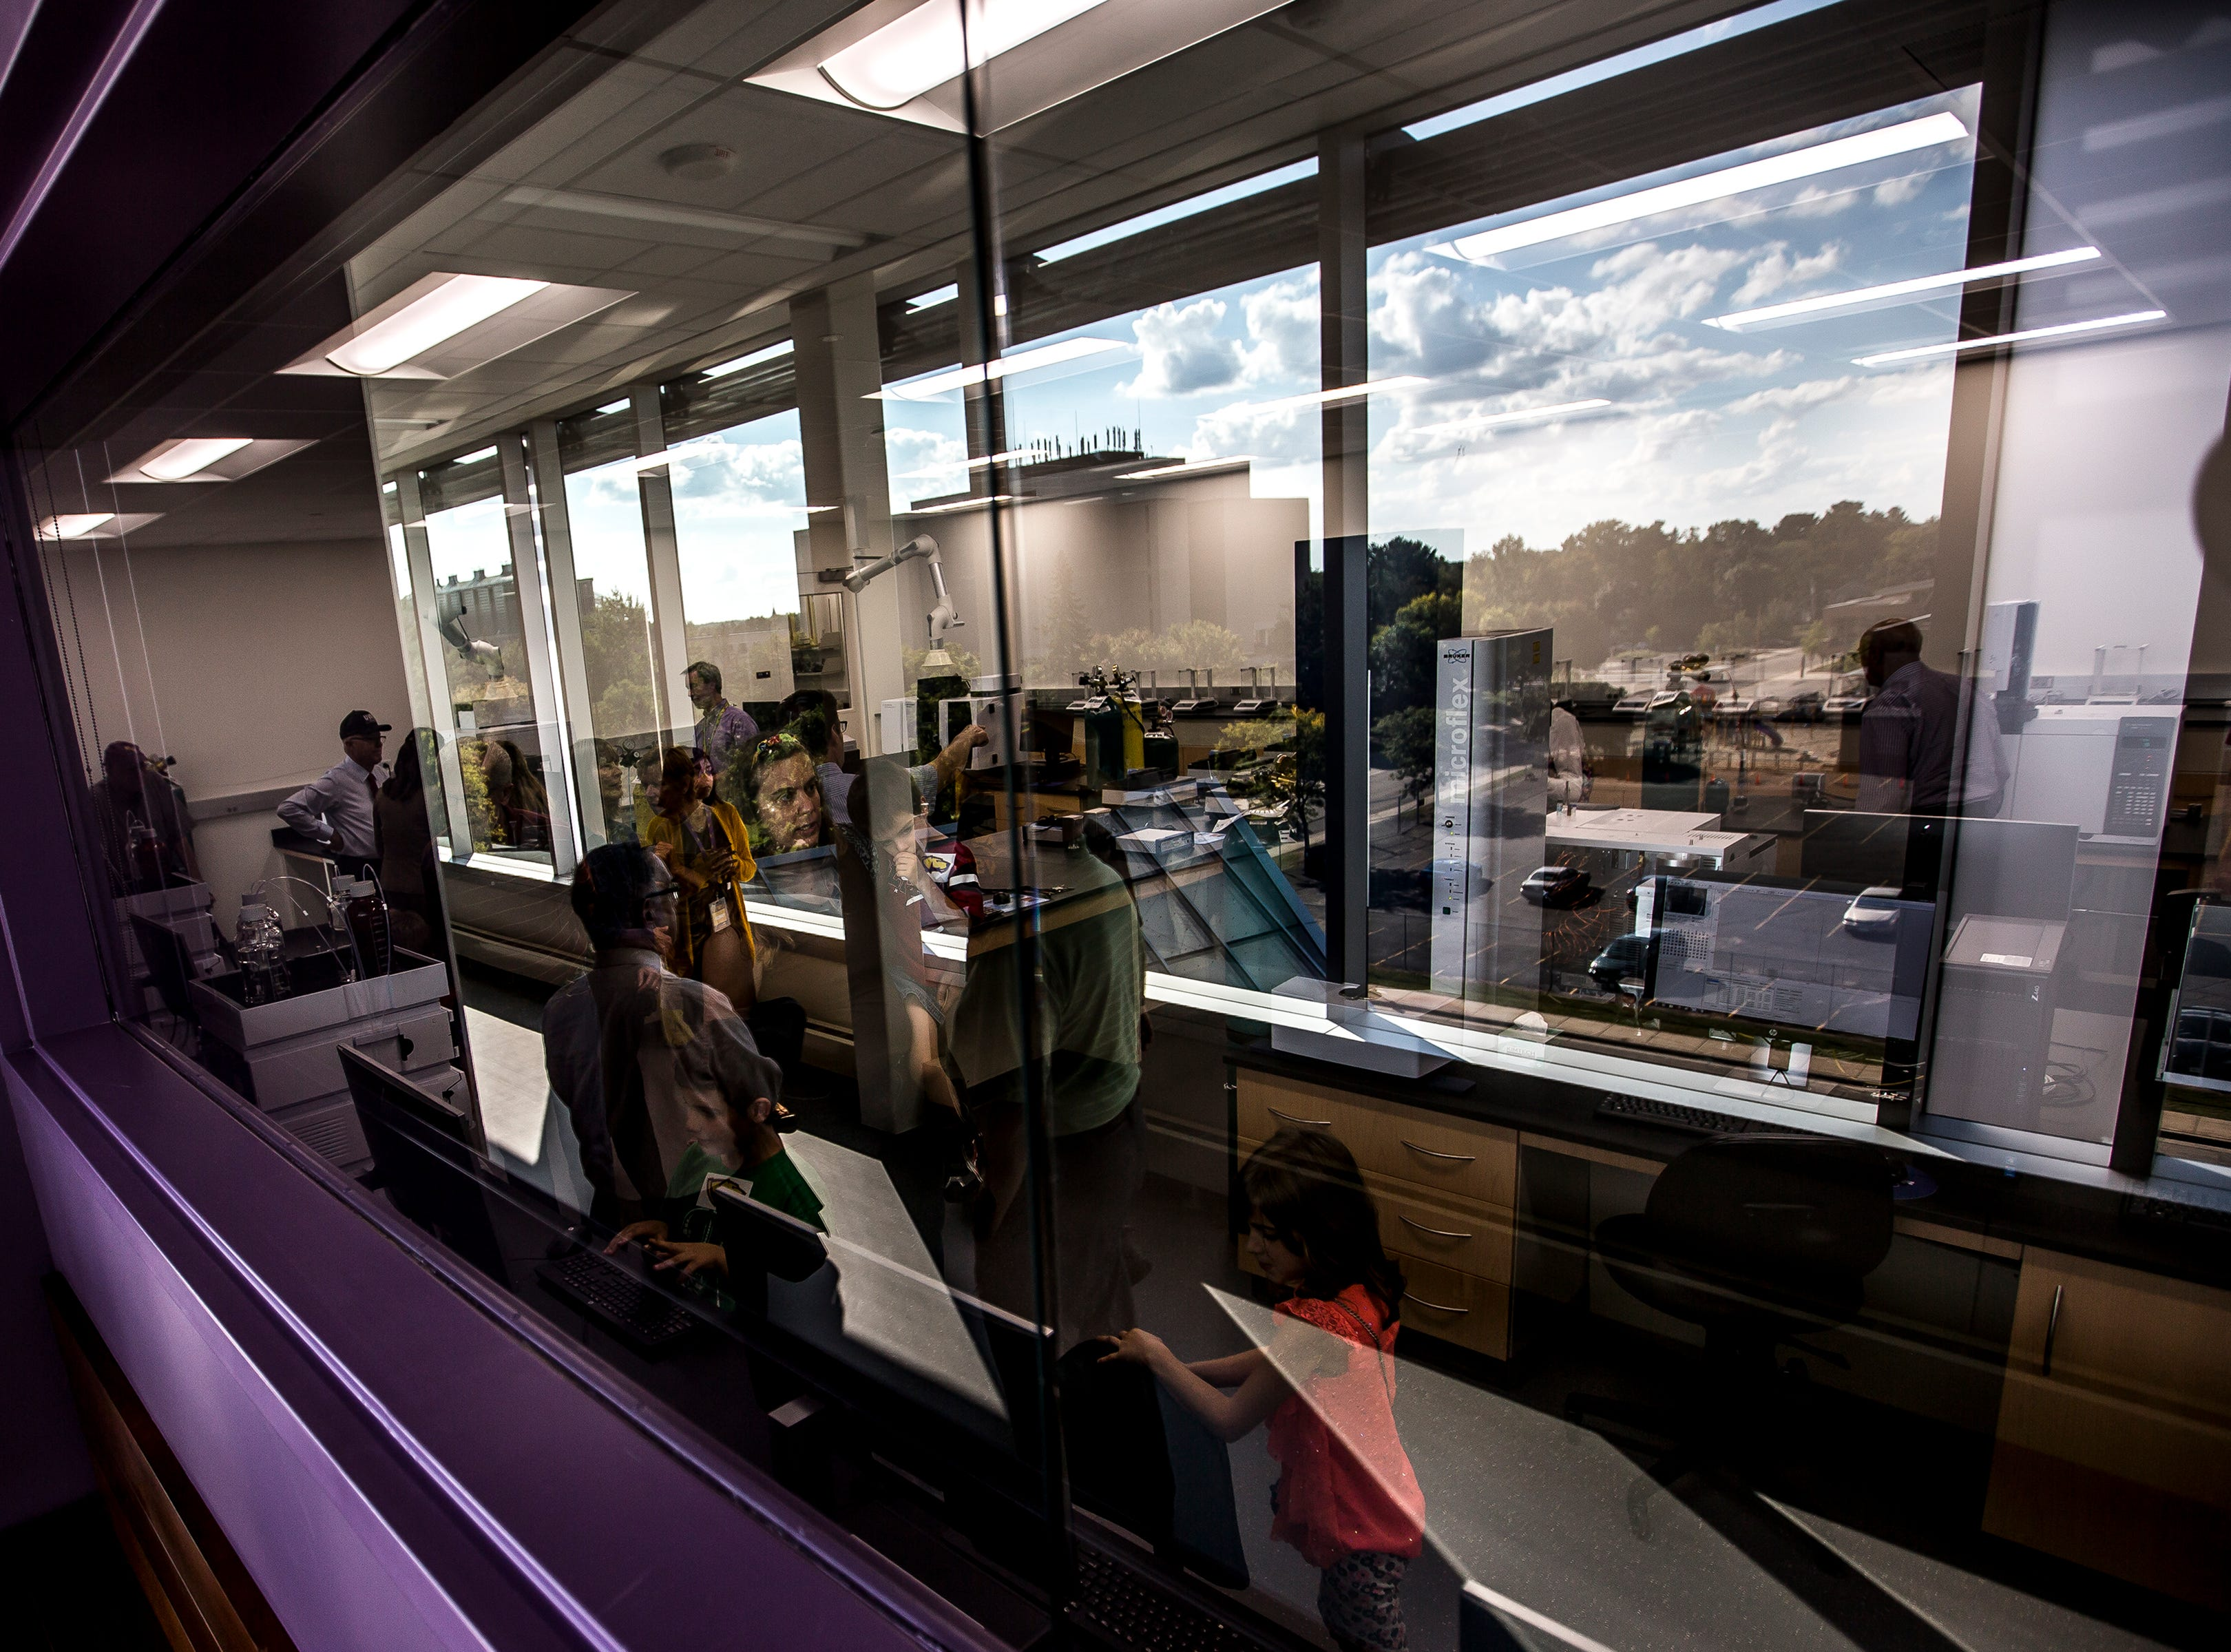 Views from a window is reflected in the windows of a laboratory as attendees tour its features during a tour of the Chemistry Biology Building at the University of Wisconsin-Stevens Point in Stevens Point, Wis., Sept. 14, 2018.